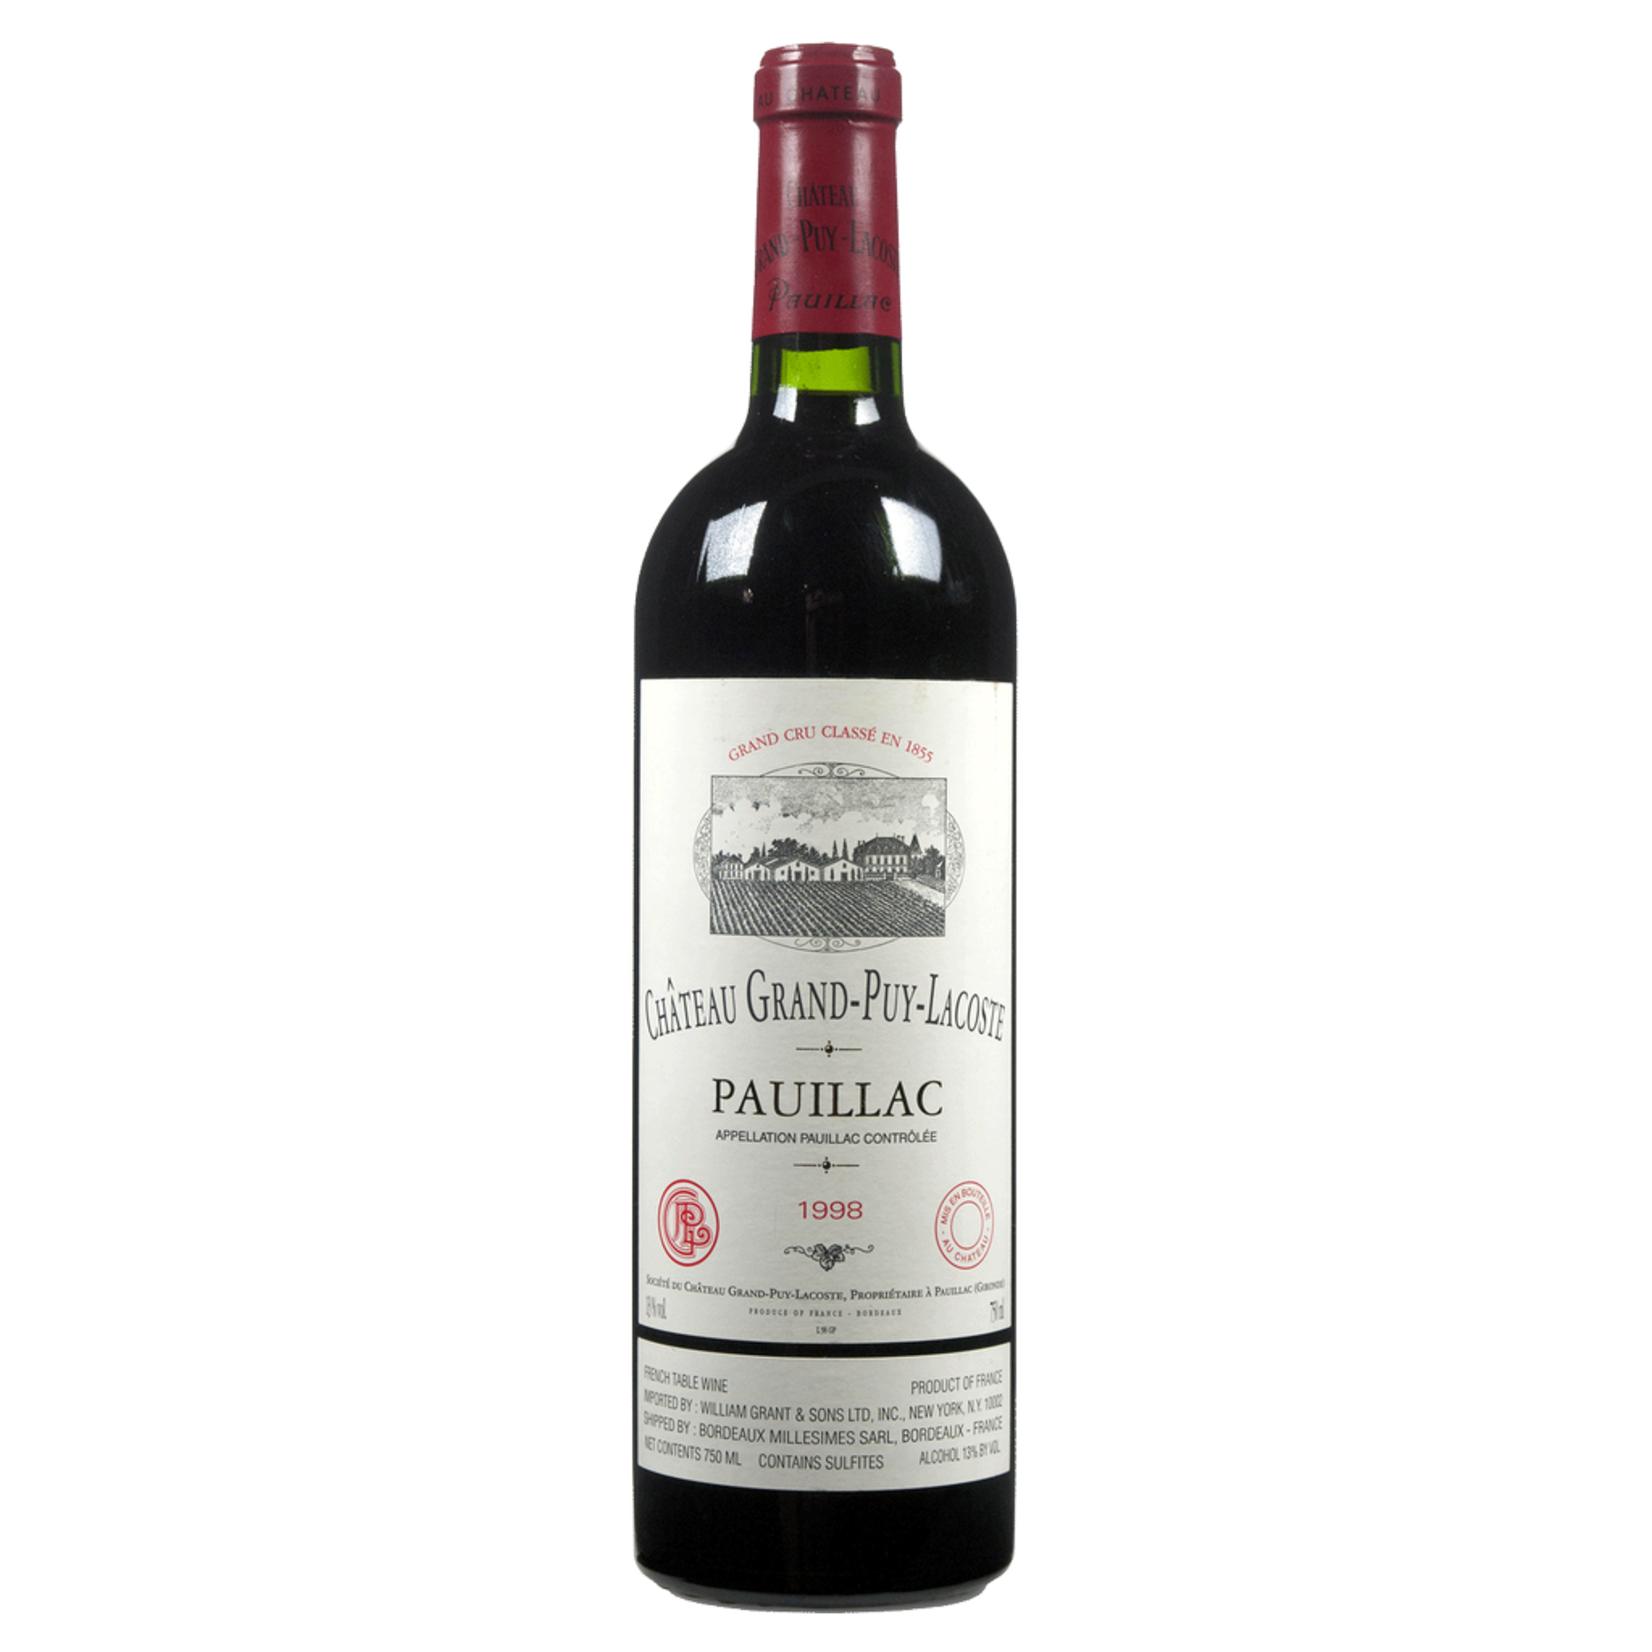 Wine Chateau Grand Puy Lacoste 1998